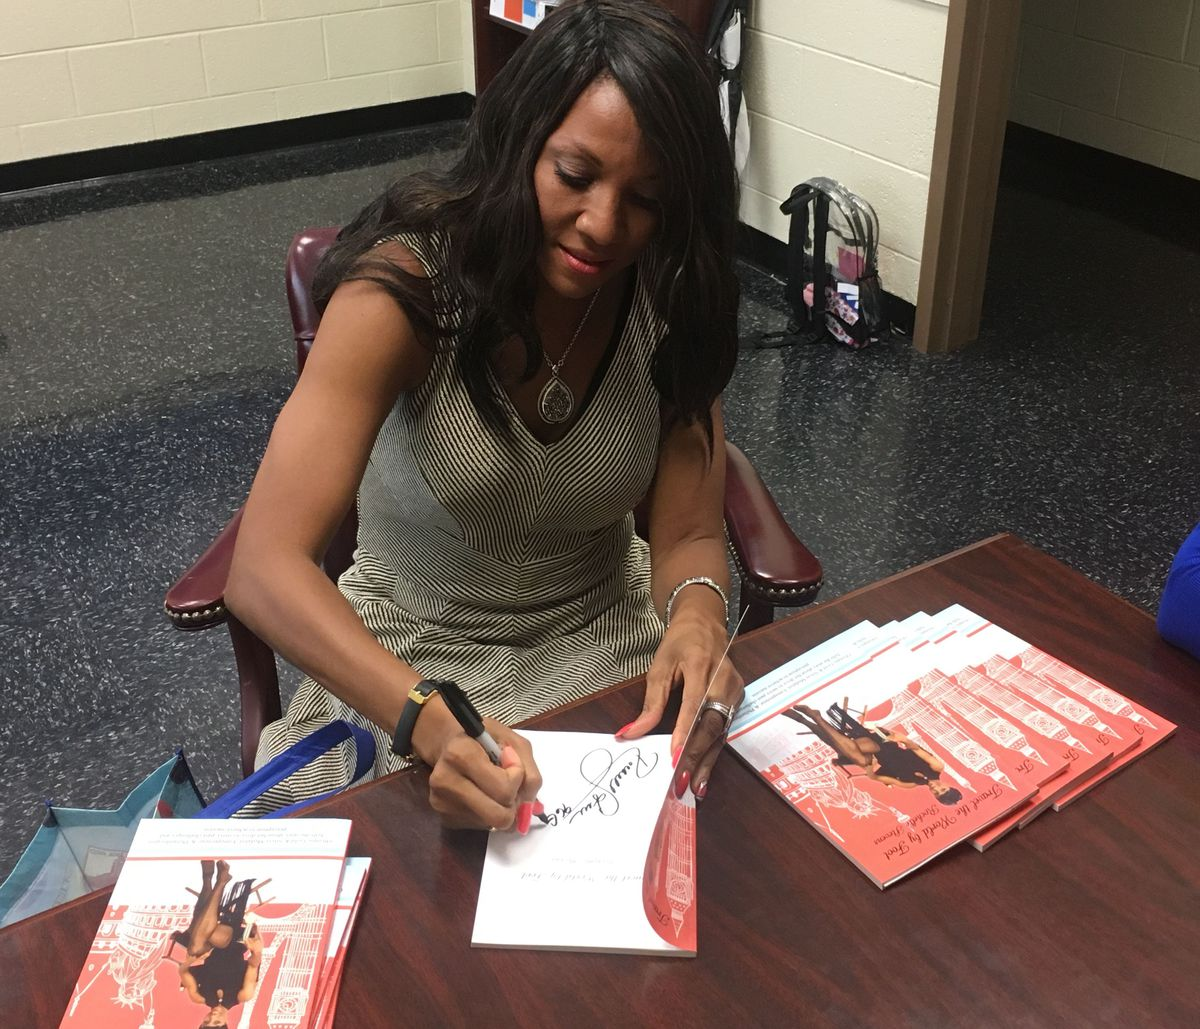 Stevens signs copies of her new autobiography for students to win for good behavior.